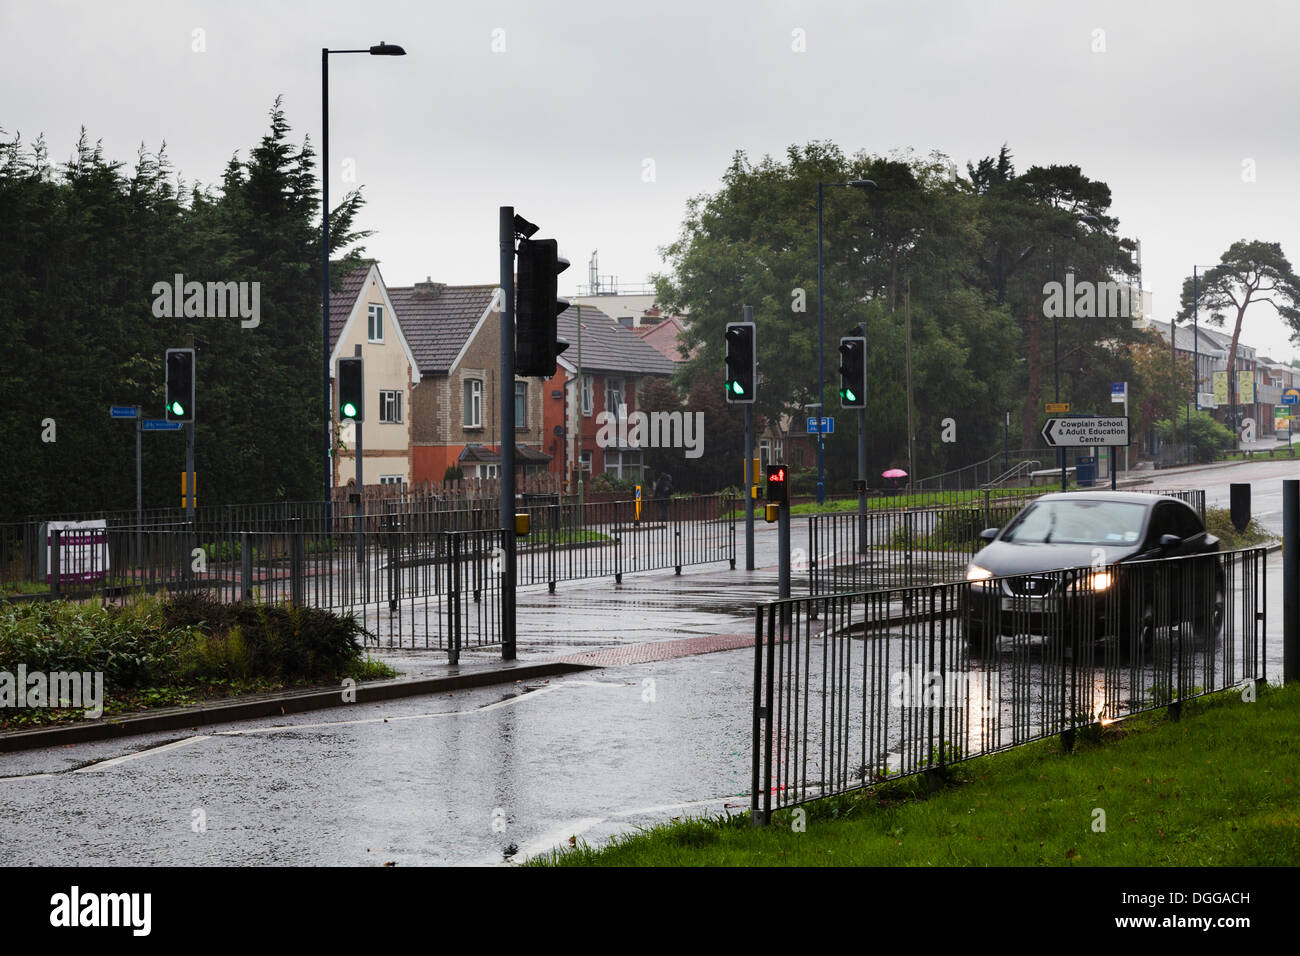 car on rainy road with lights controlled staggered pedestrian pelican crossing - Stock Image